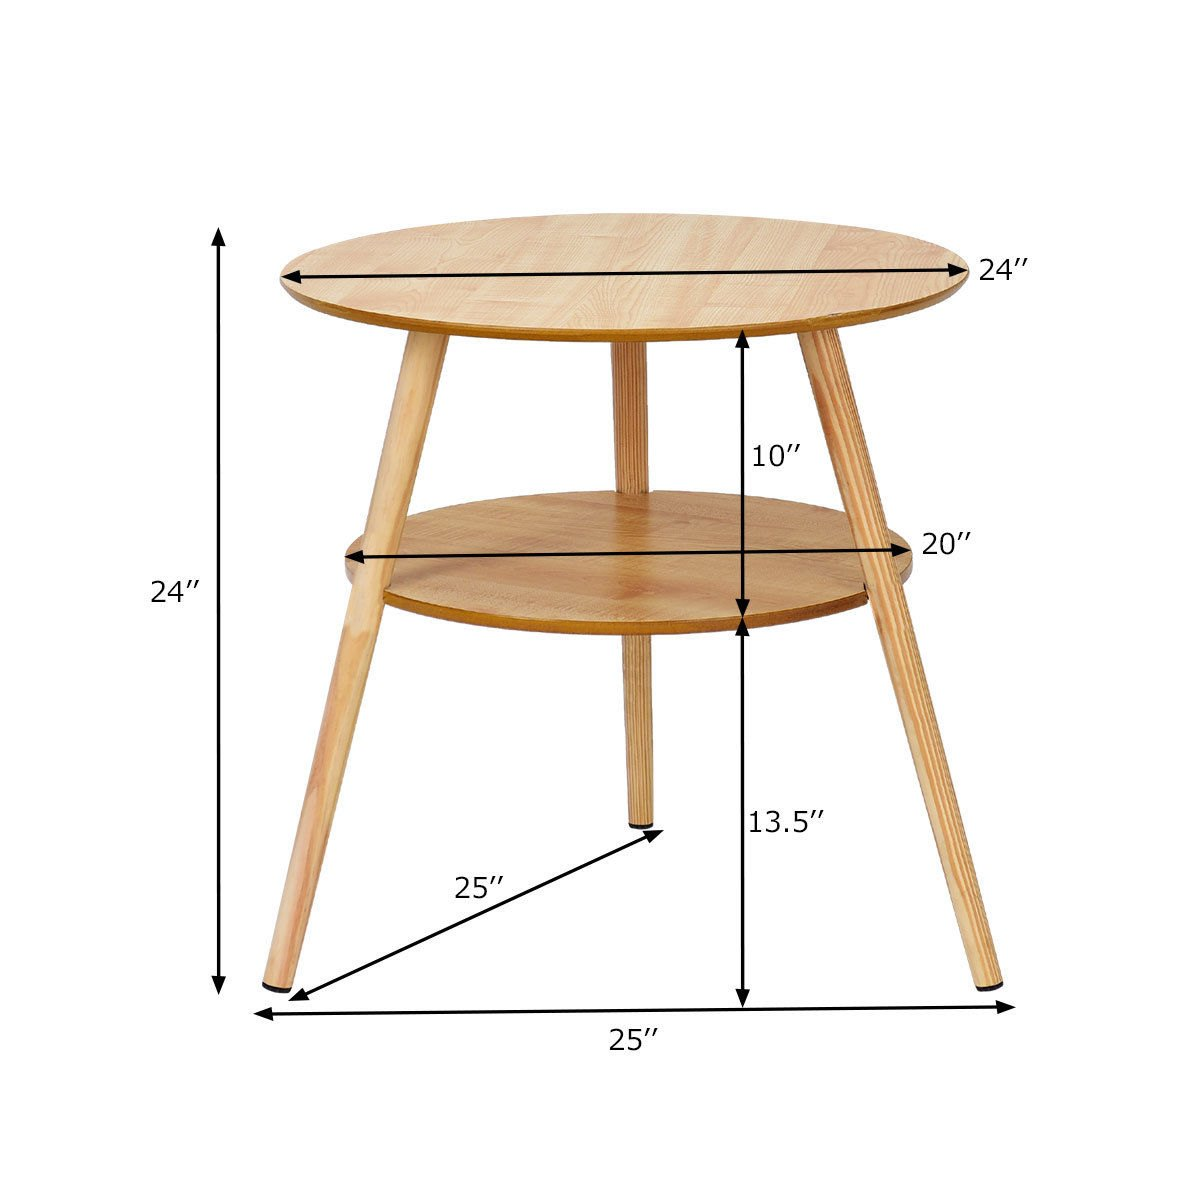 way goplus tier round end coffee table side accent wood legs living room furniture outdoor wall light fixtures with umbrella hole natural bottle wine rack grey chest small